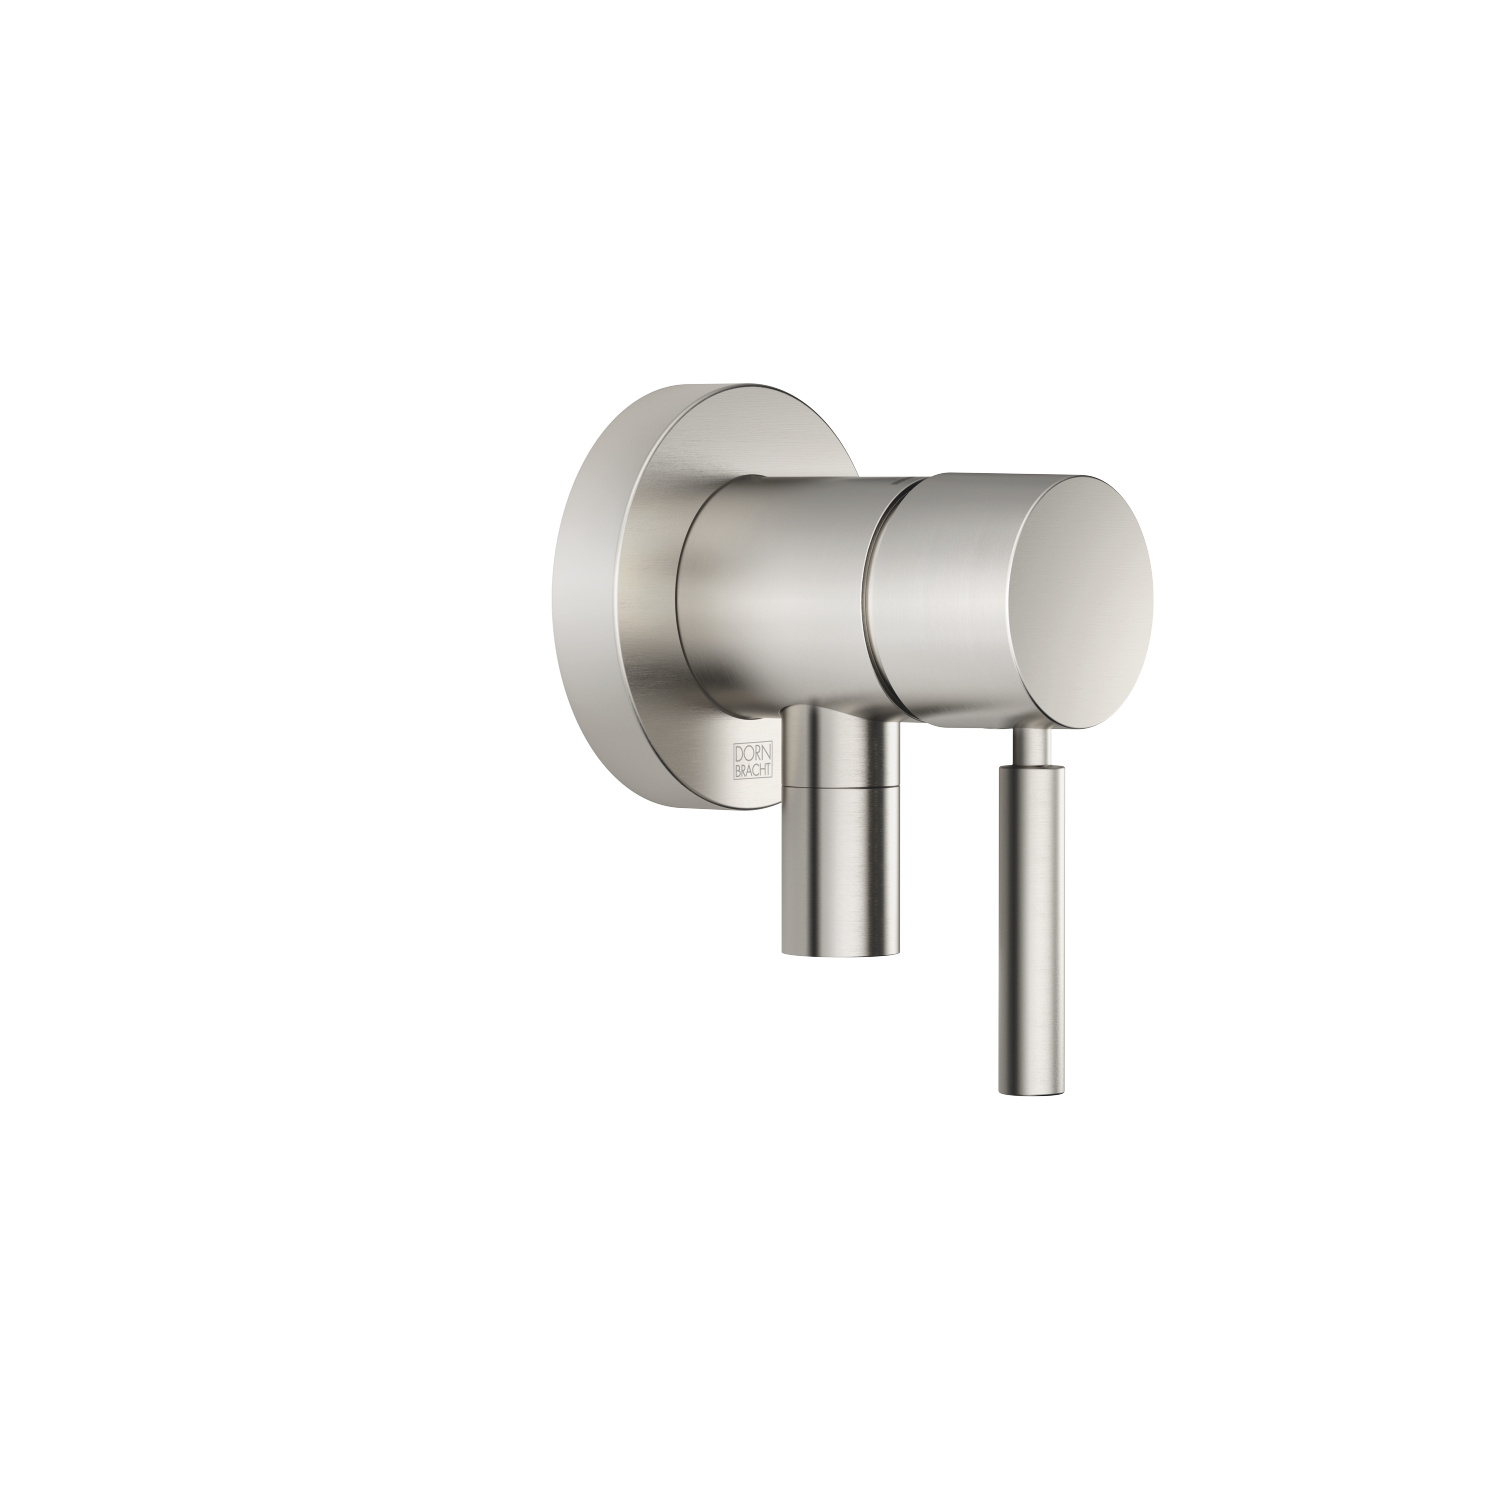 Concealed single-lever mixer with cover plate with integrated shower connection - platinum matt